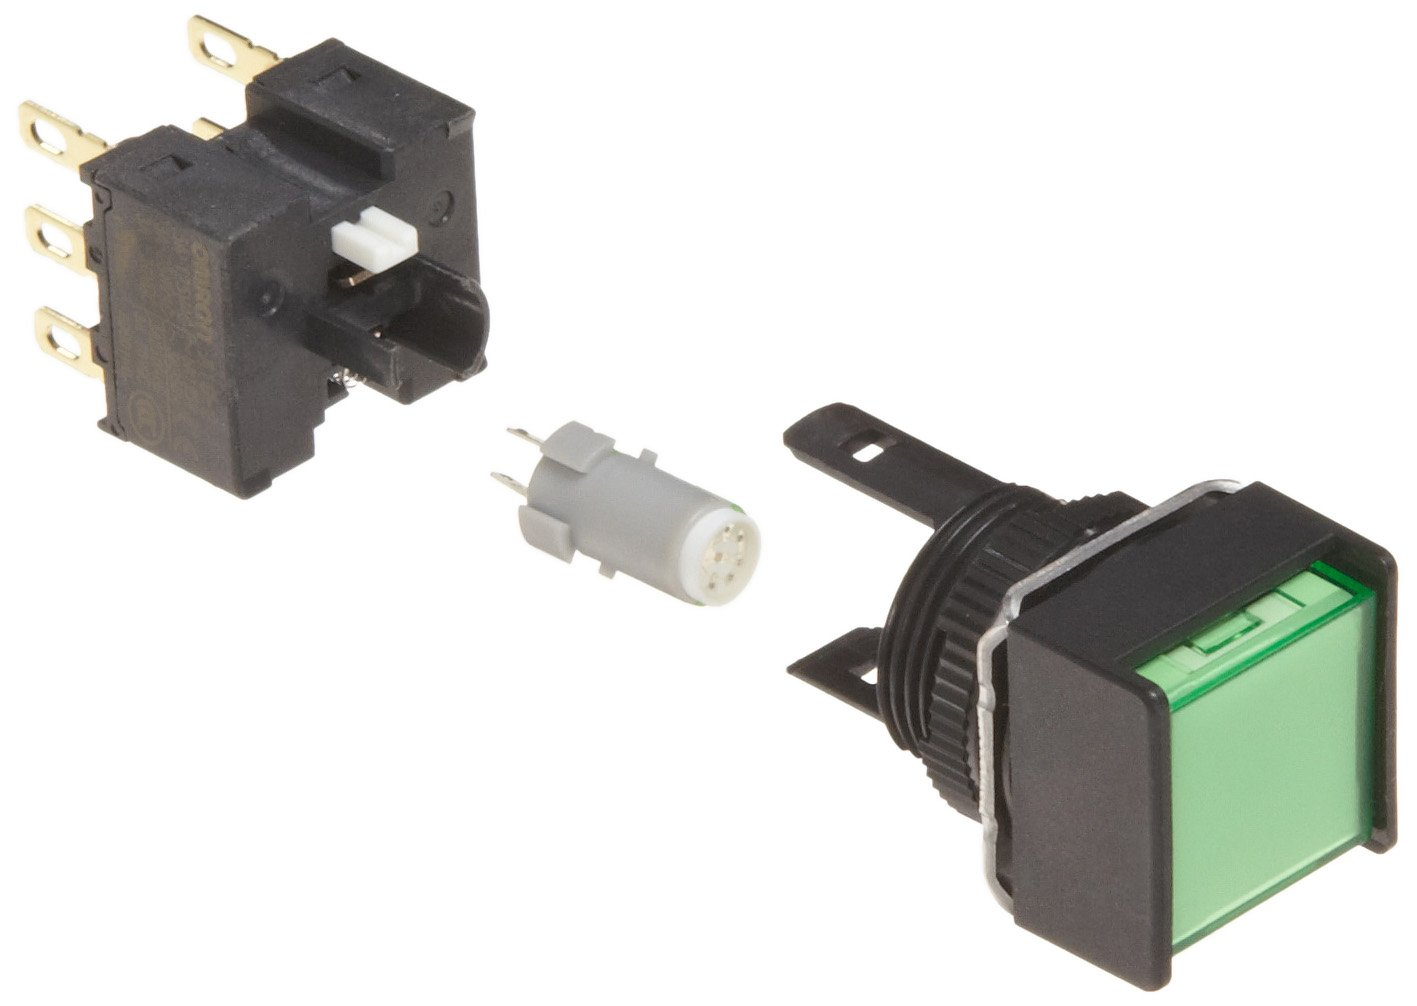 Omron A165L-AGM-24D-2 Two Way Guard Type Pushbutton and Switch, Solder Terminal, IP65 Oil-Resistant, 16mm Mounting Aperture, LED Lighted, Momentary Operation, Square, Green, 24 VDC Rated Voltage, Double Pole Double Throw Contacts